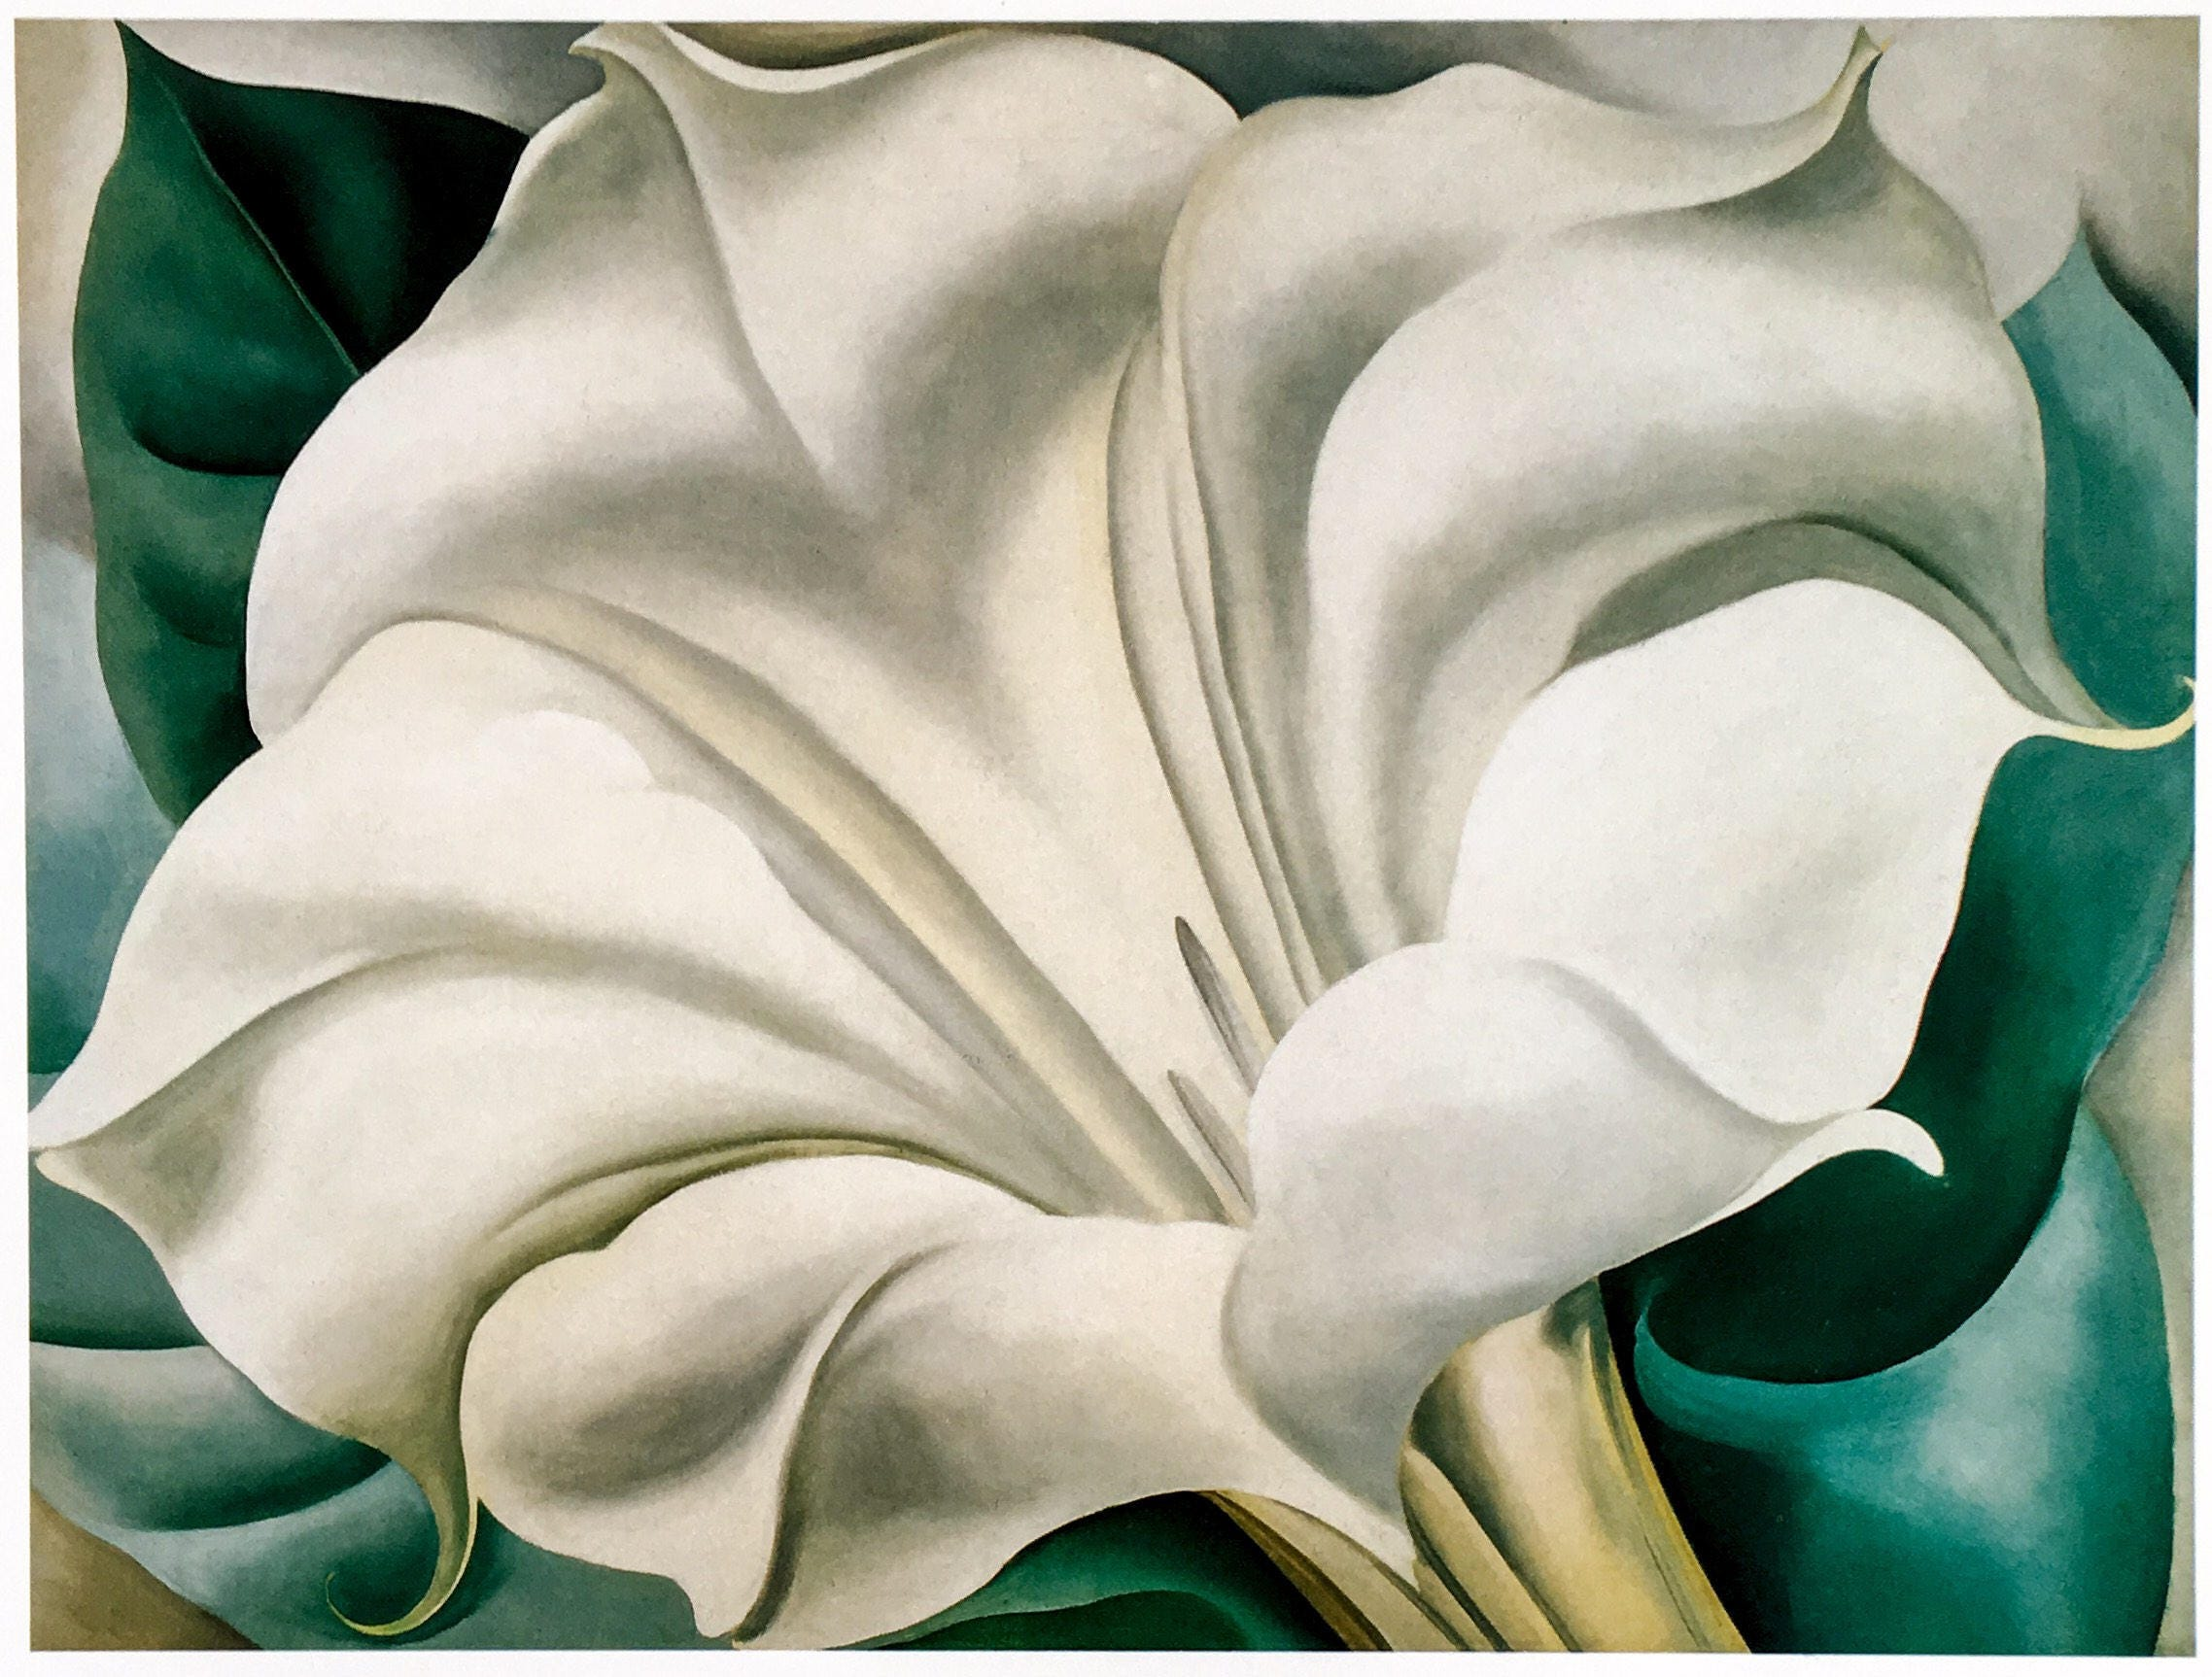 Georgia o keeffe the white flower images flower decoration ideas georgia o keeffe the white flower choice image flower decoration ideas georgia o keeffe the white mightylinksfo